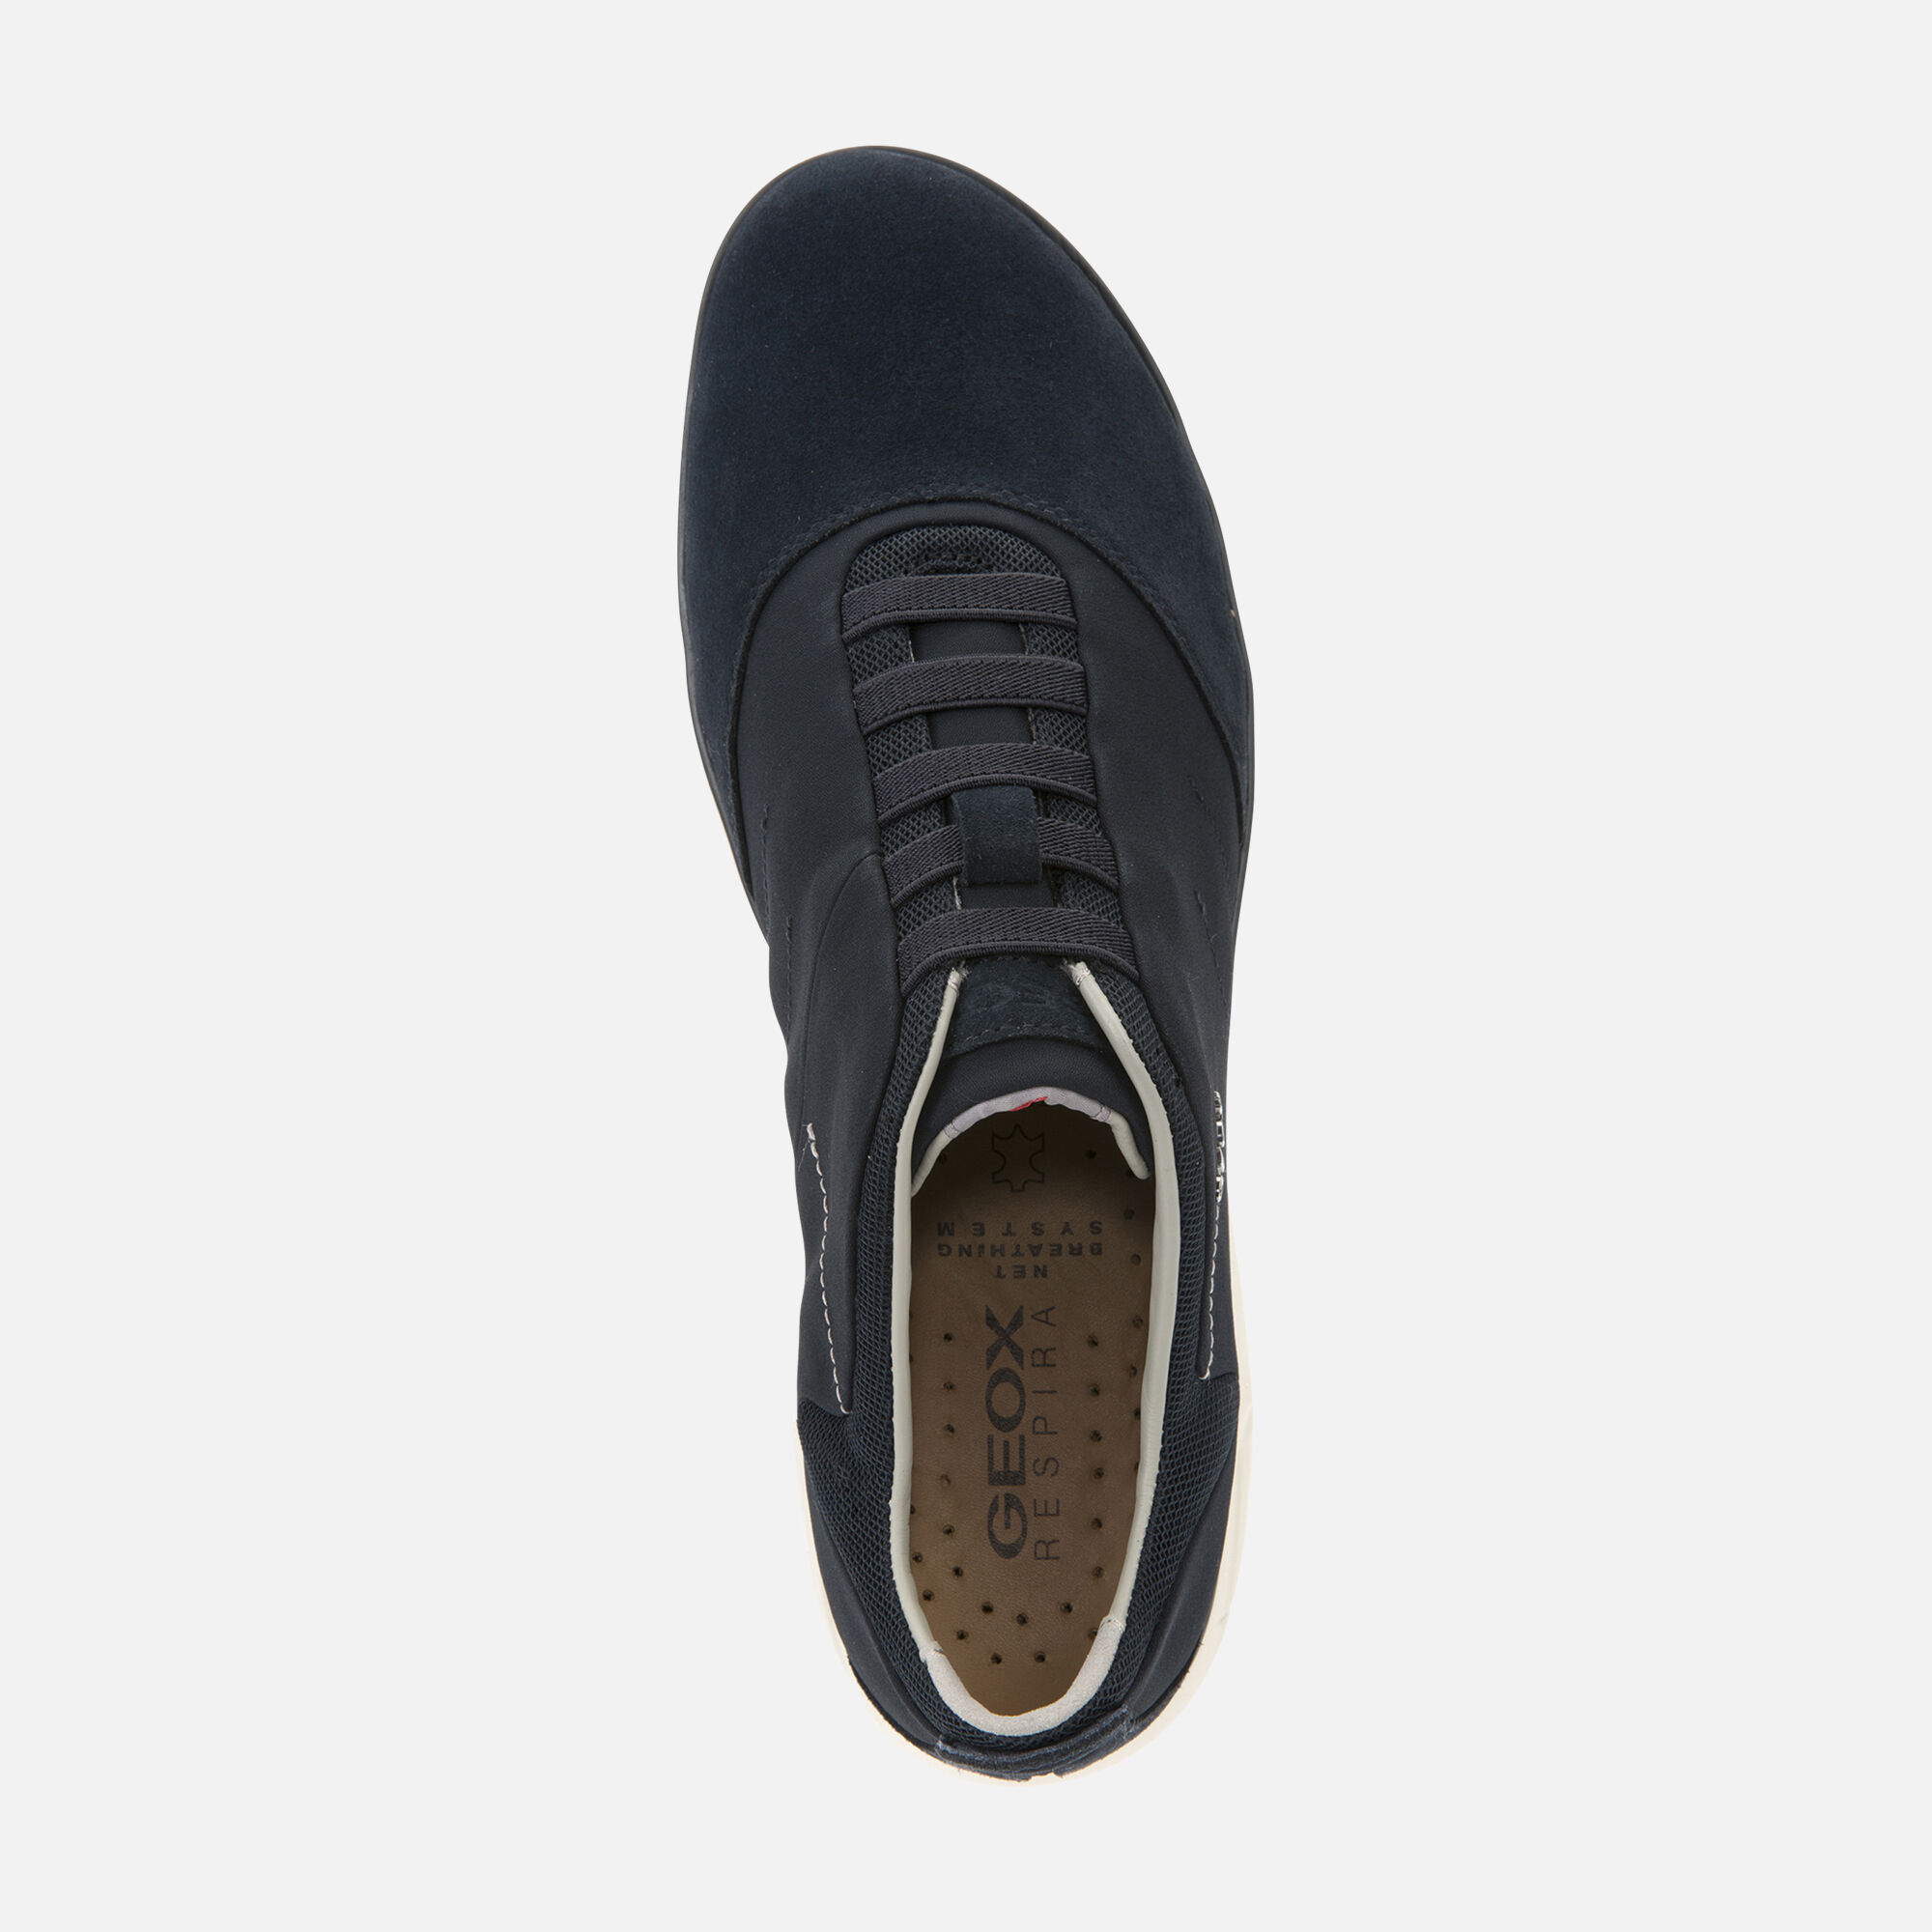 chaussures homme nebula geox